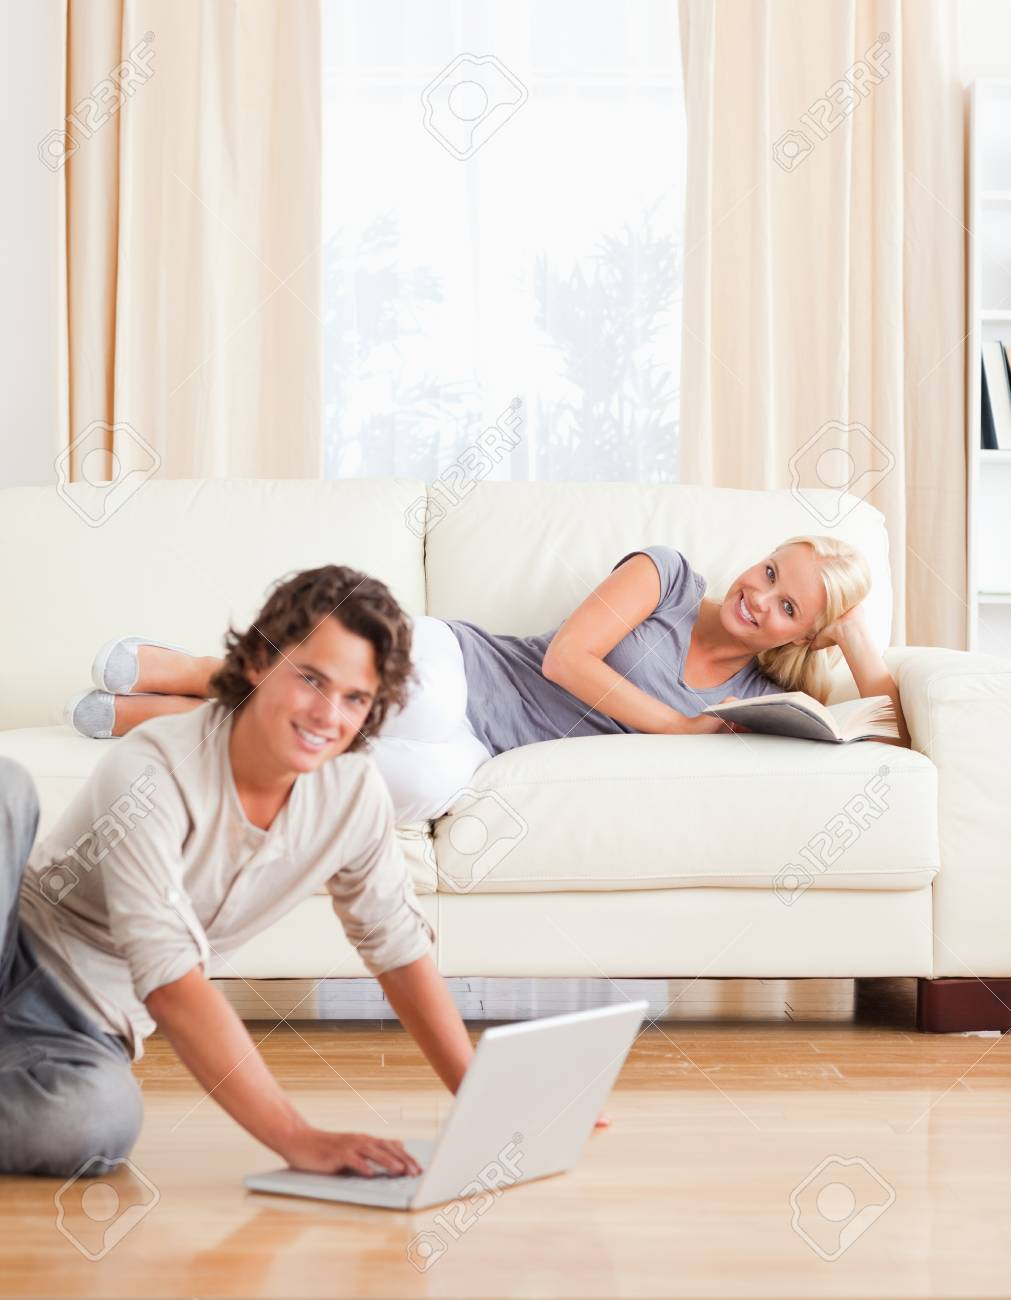 Portrait of a man with a laptop while his girlfriend is with a book looking at the camera Stock Photo - 11225206